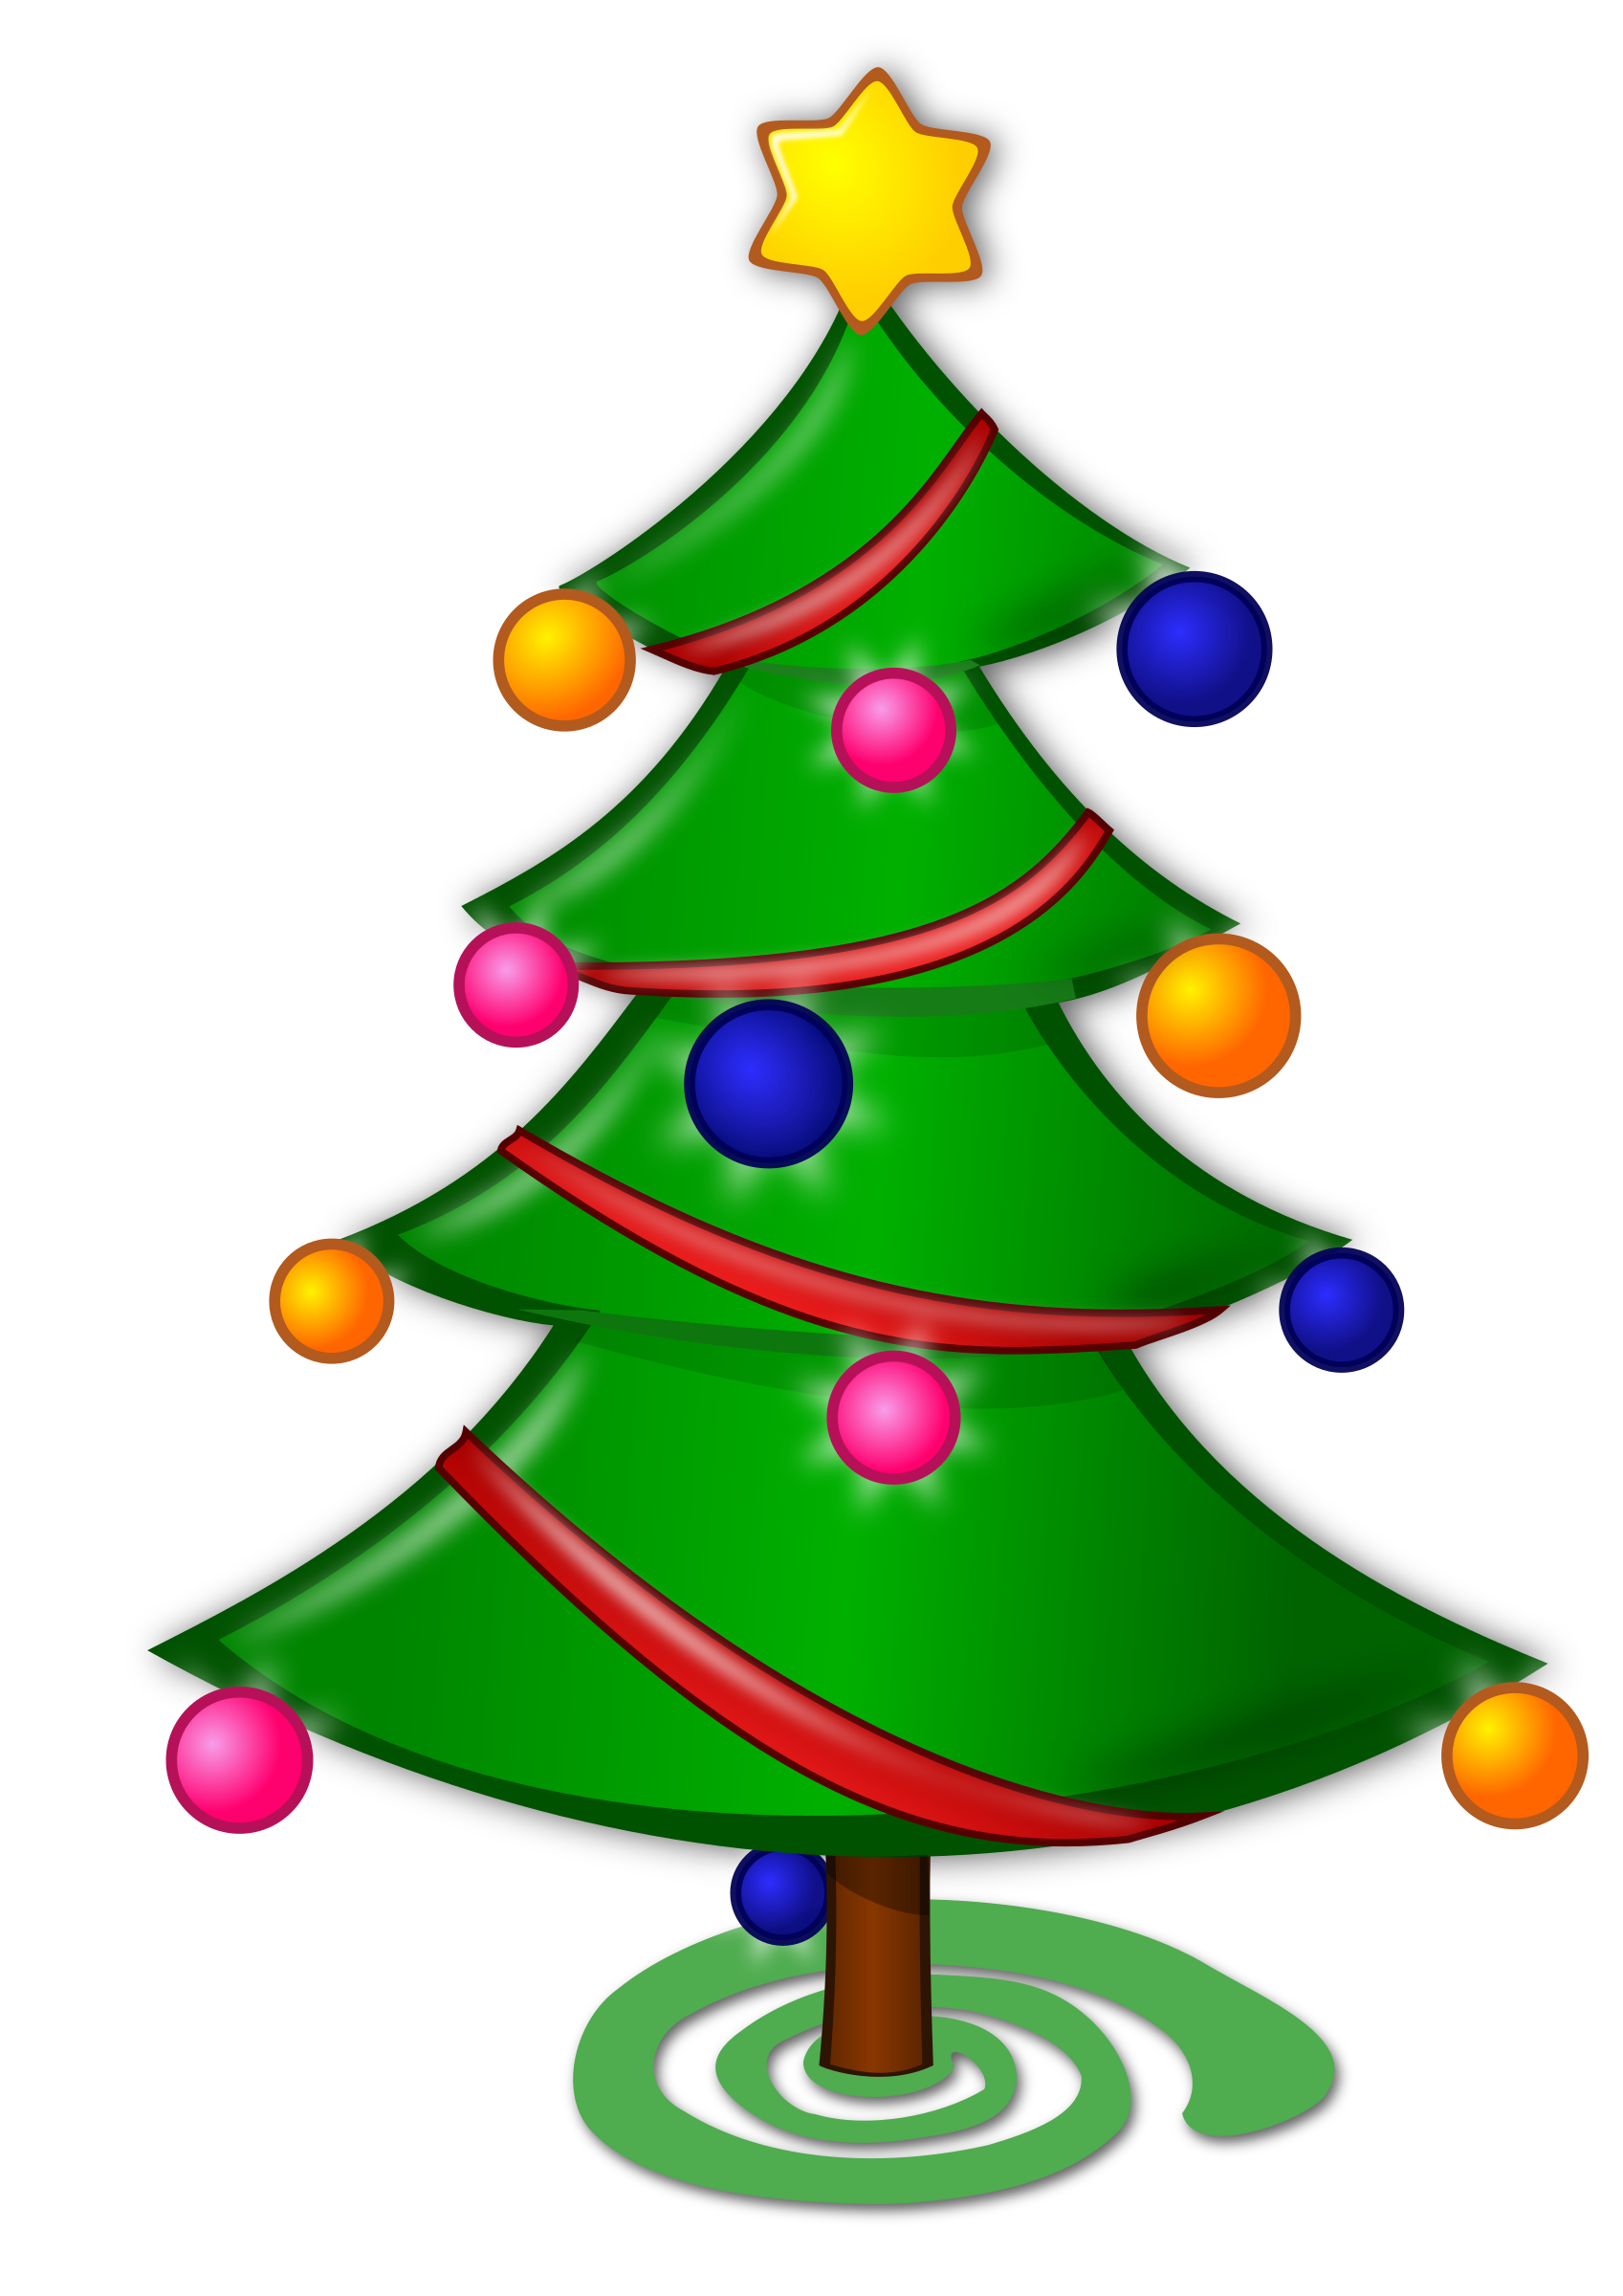 Christmas Tree clipart new year tree Christmas Colored: tree collection Christmas